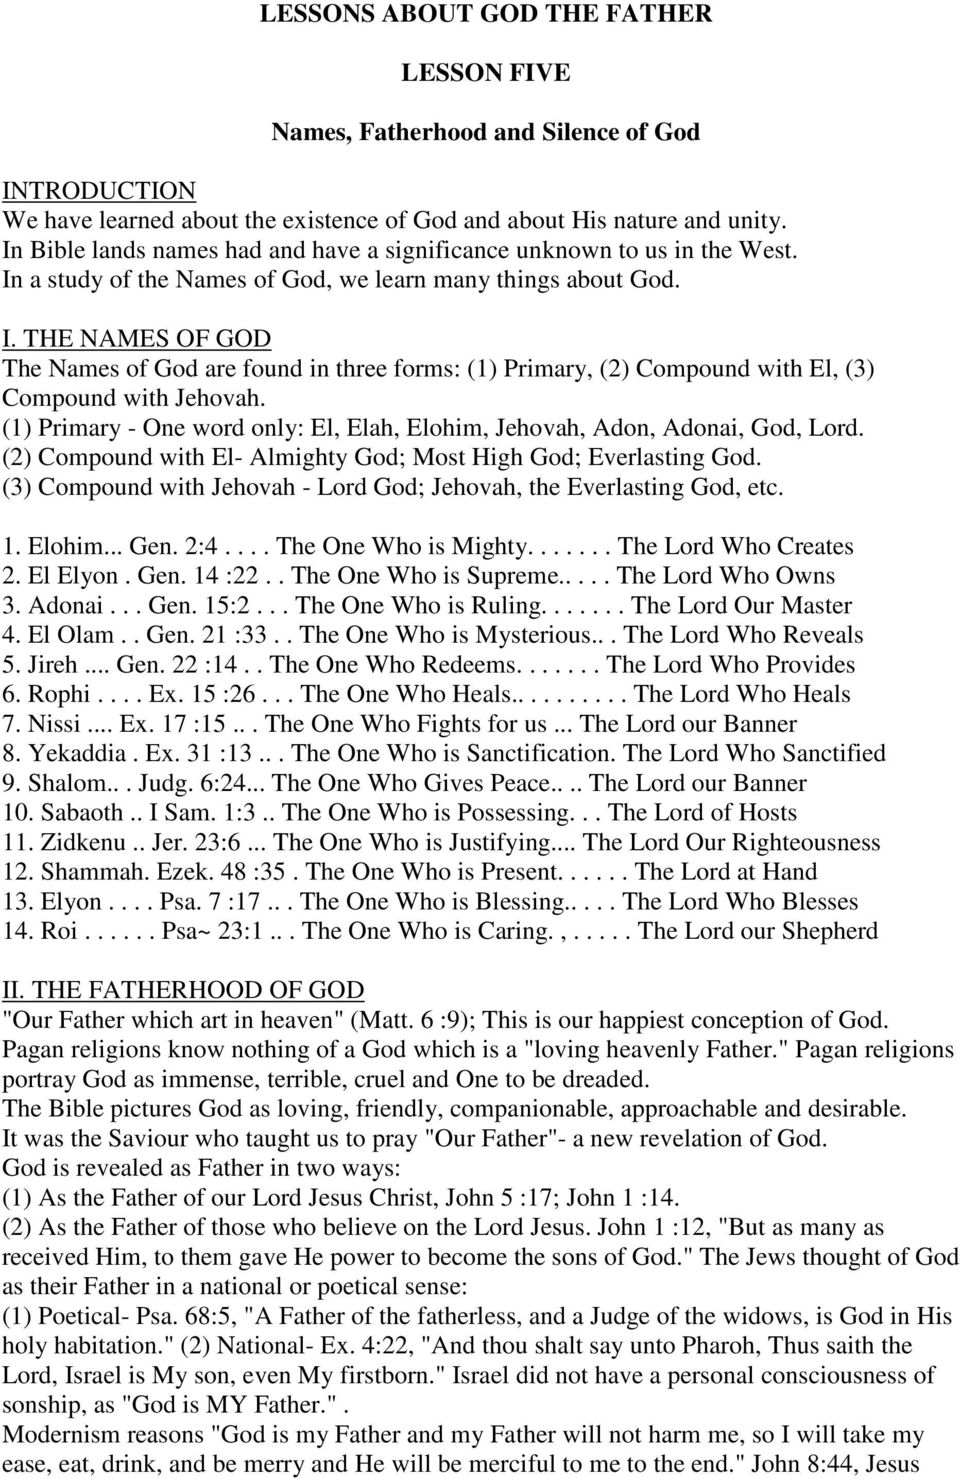 100 BIBLE LESSONS By Alban Douglas LESSON ONE  The Existence of God